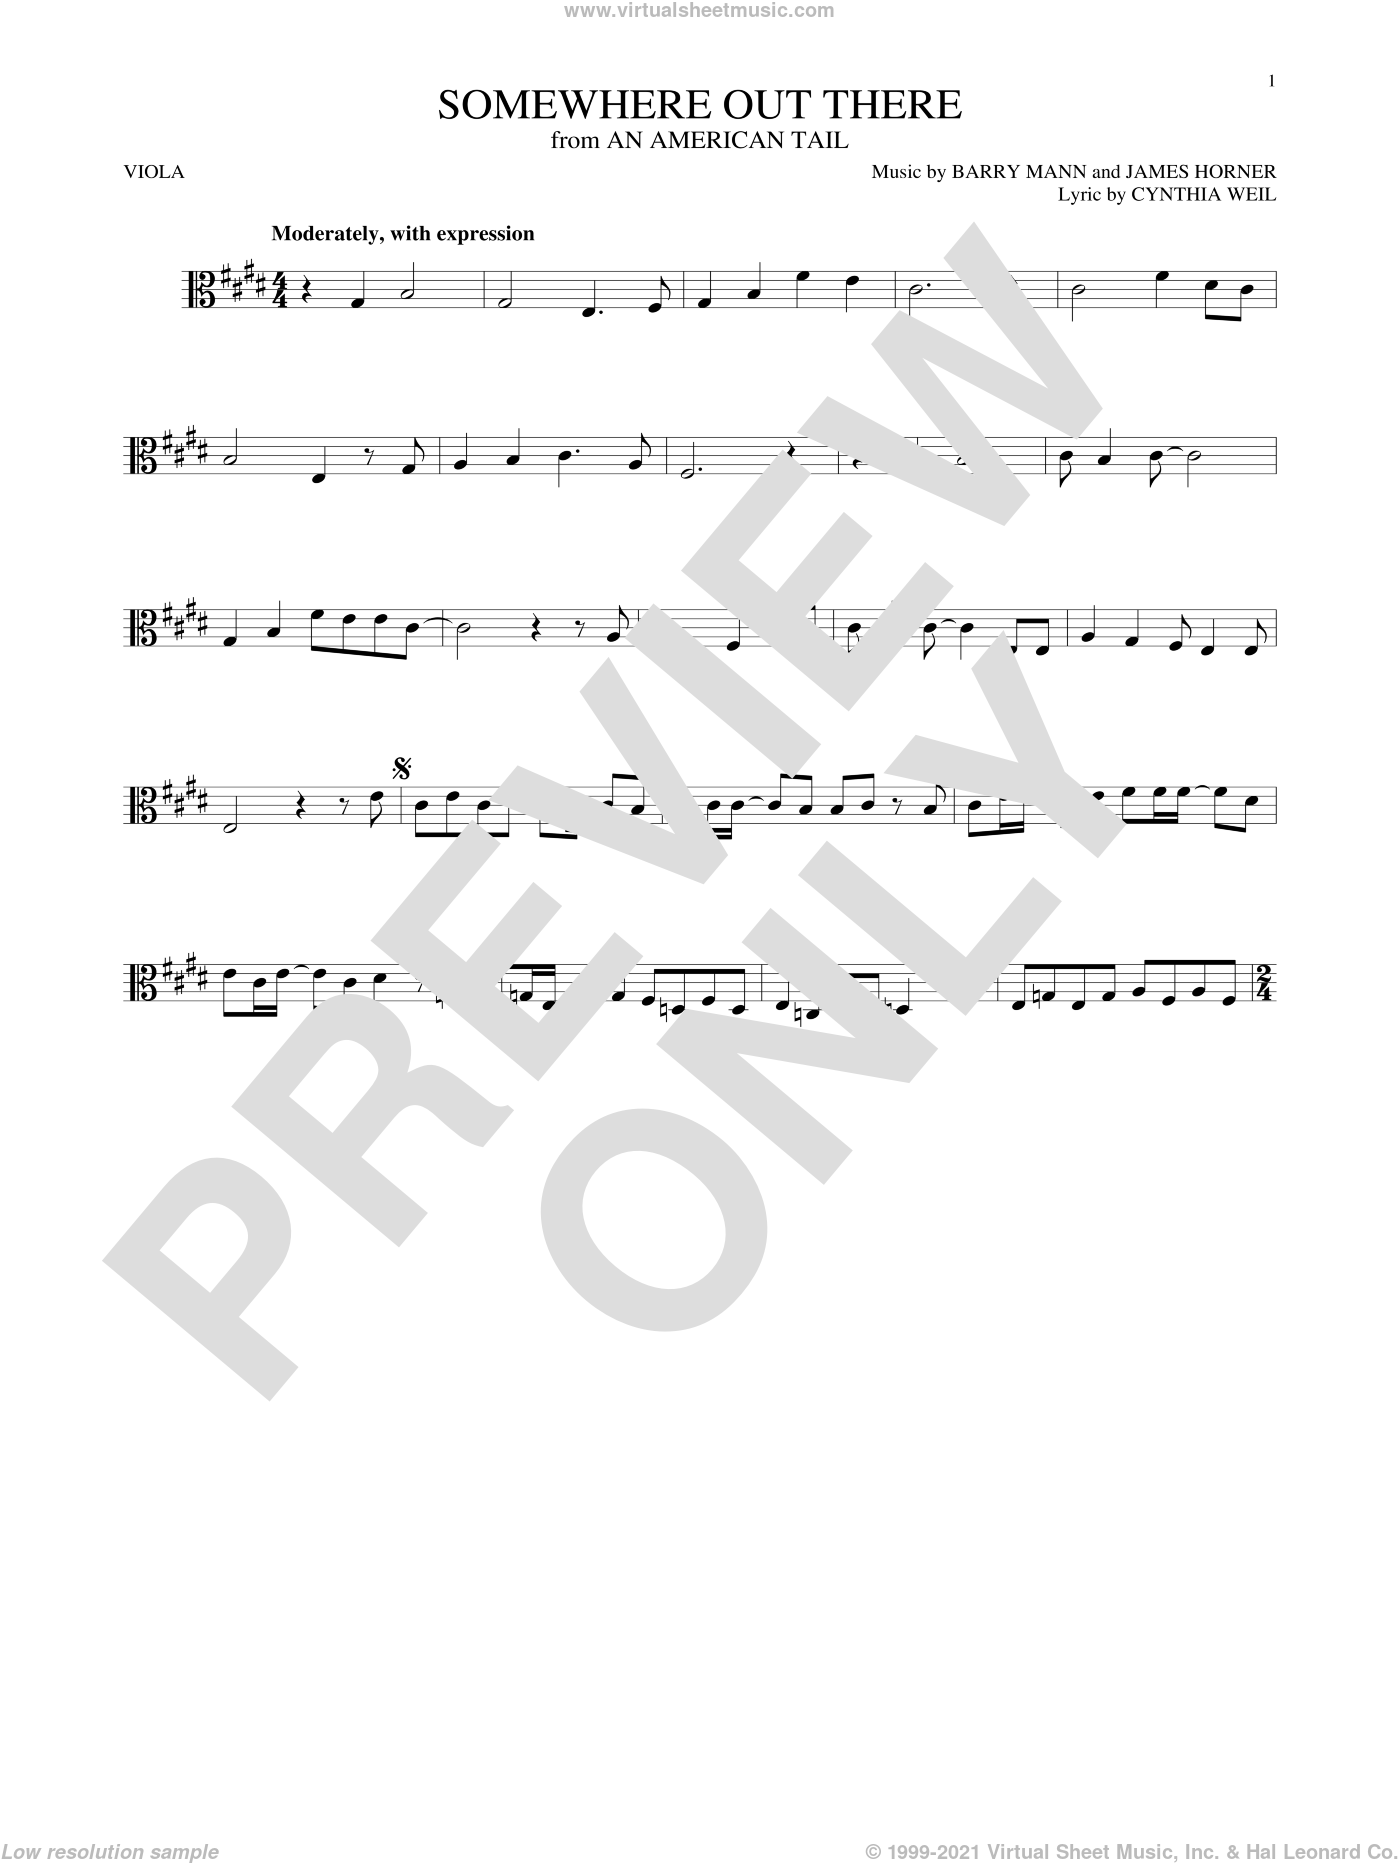 Somewhere Out There sheet music for viola solo by Linda Ronstadt & James Ingram, Barry Mann, Cynthia Weil and James Horner, intermediate skill level